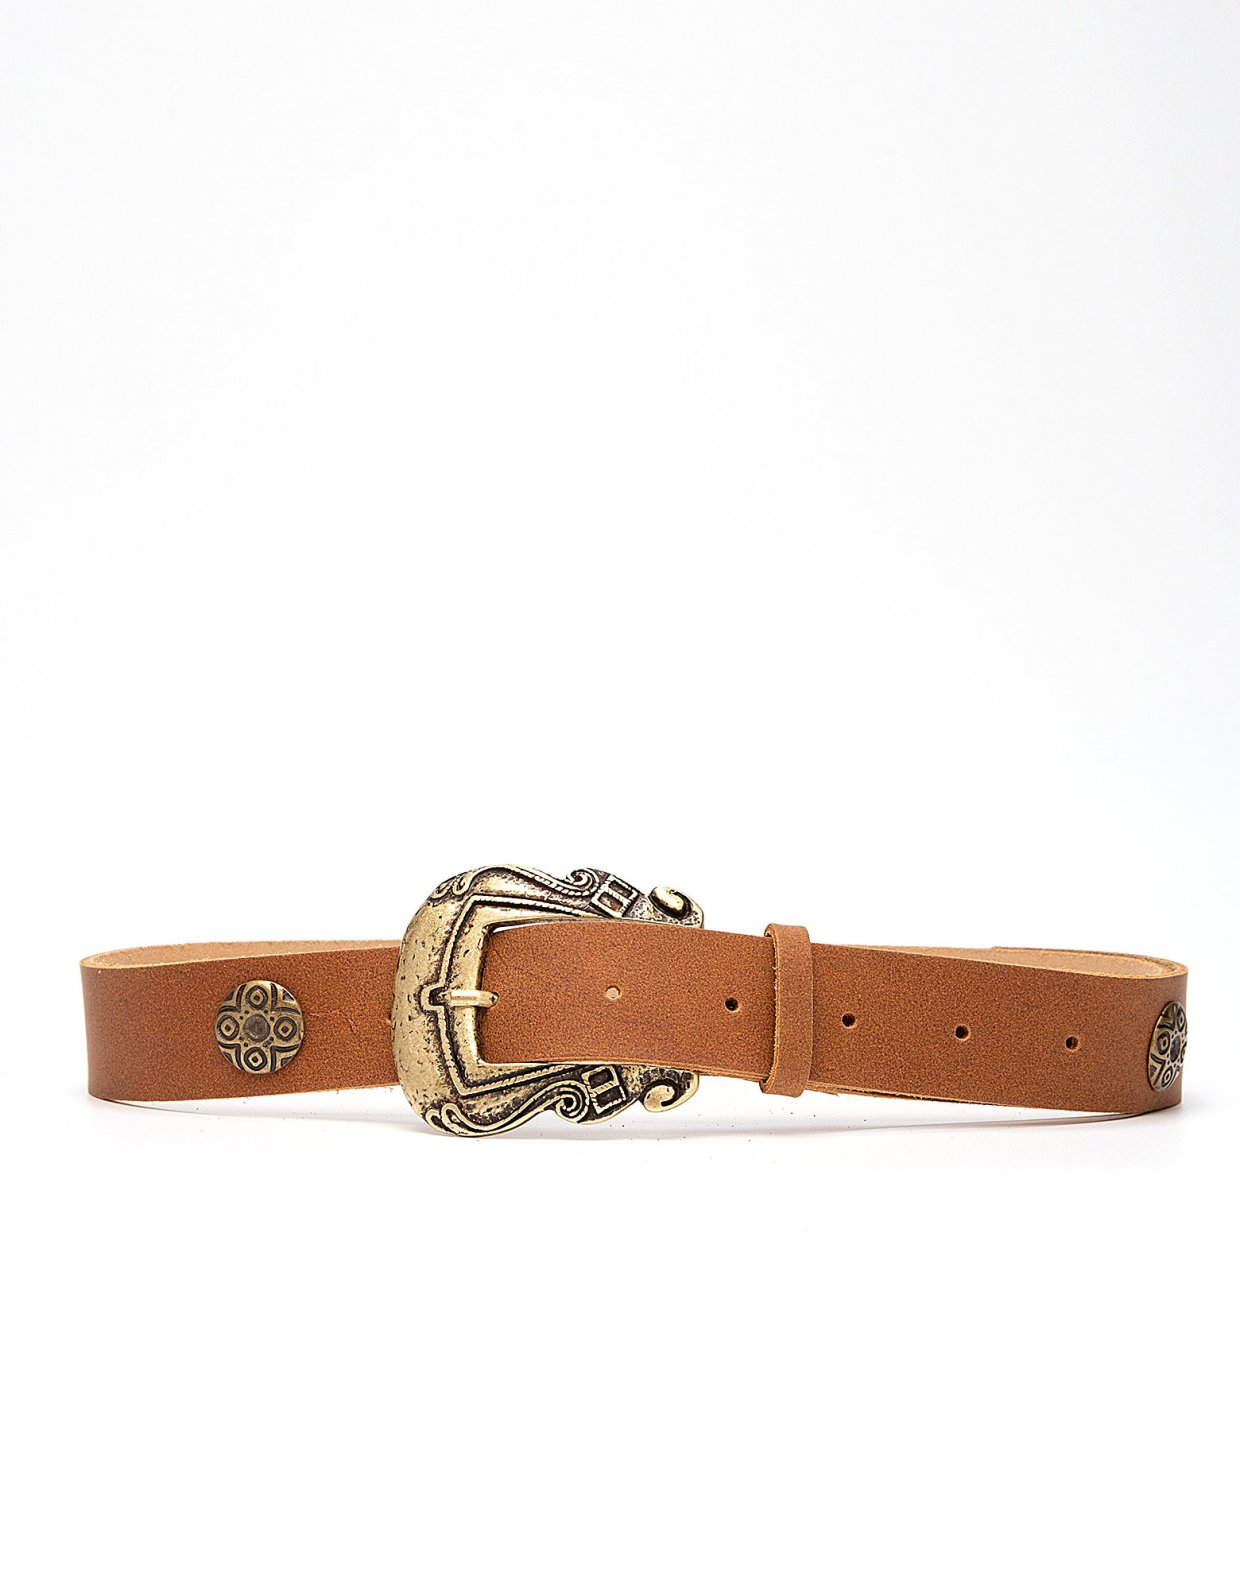 Peace & Chaos Versailles leather belt tanned